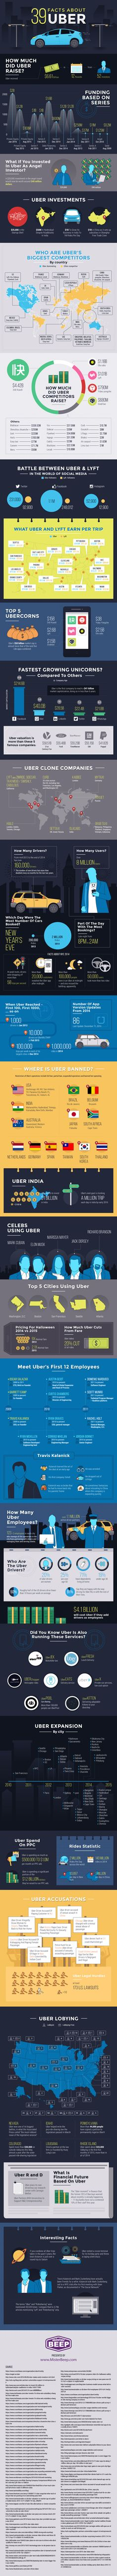 39 Facts About Uber #Infographic #Transportation